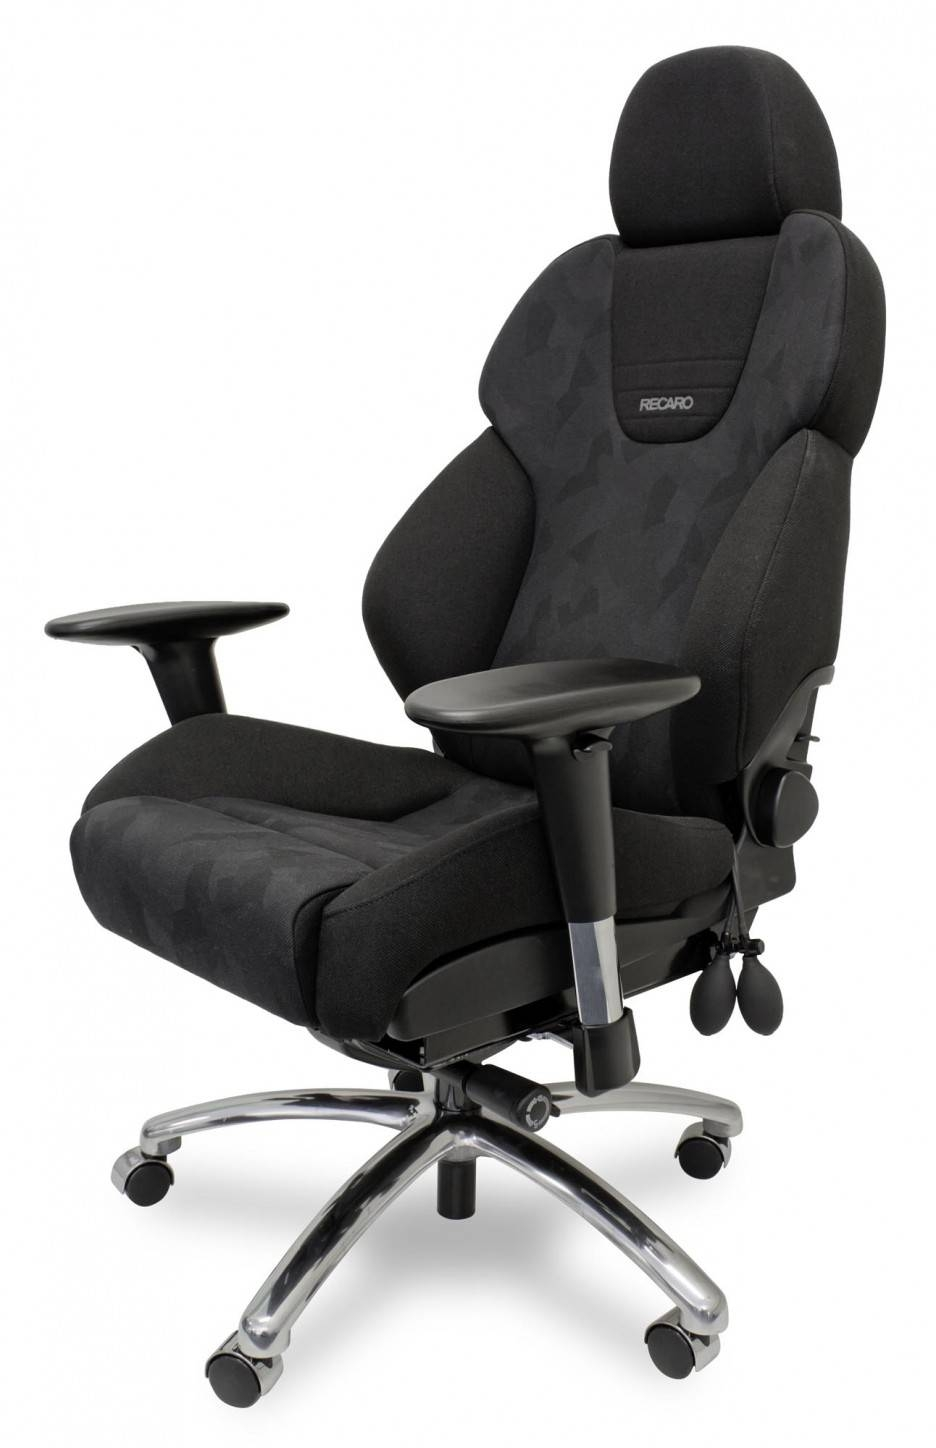 Graceful Comfortable Desk Chairs Comfortable Desk Chair Review throughout Sofa Desk Chairs (Image 4 of 15)